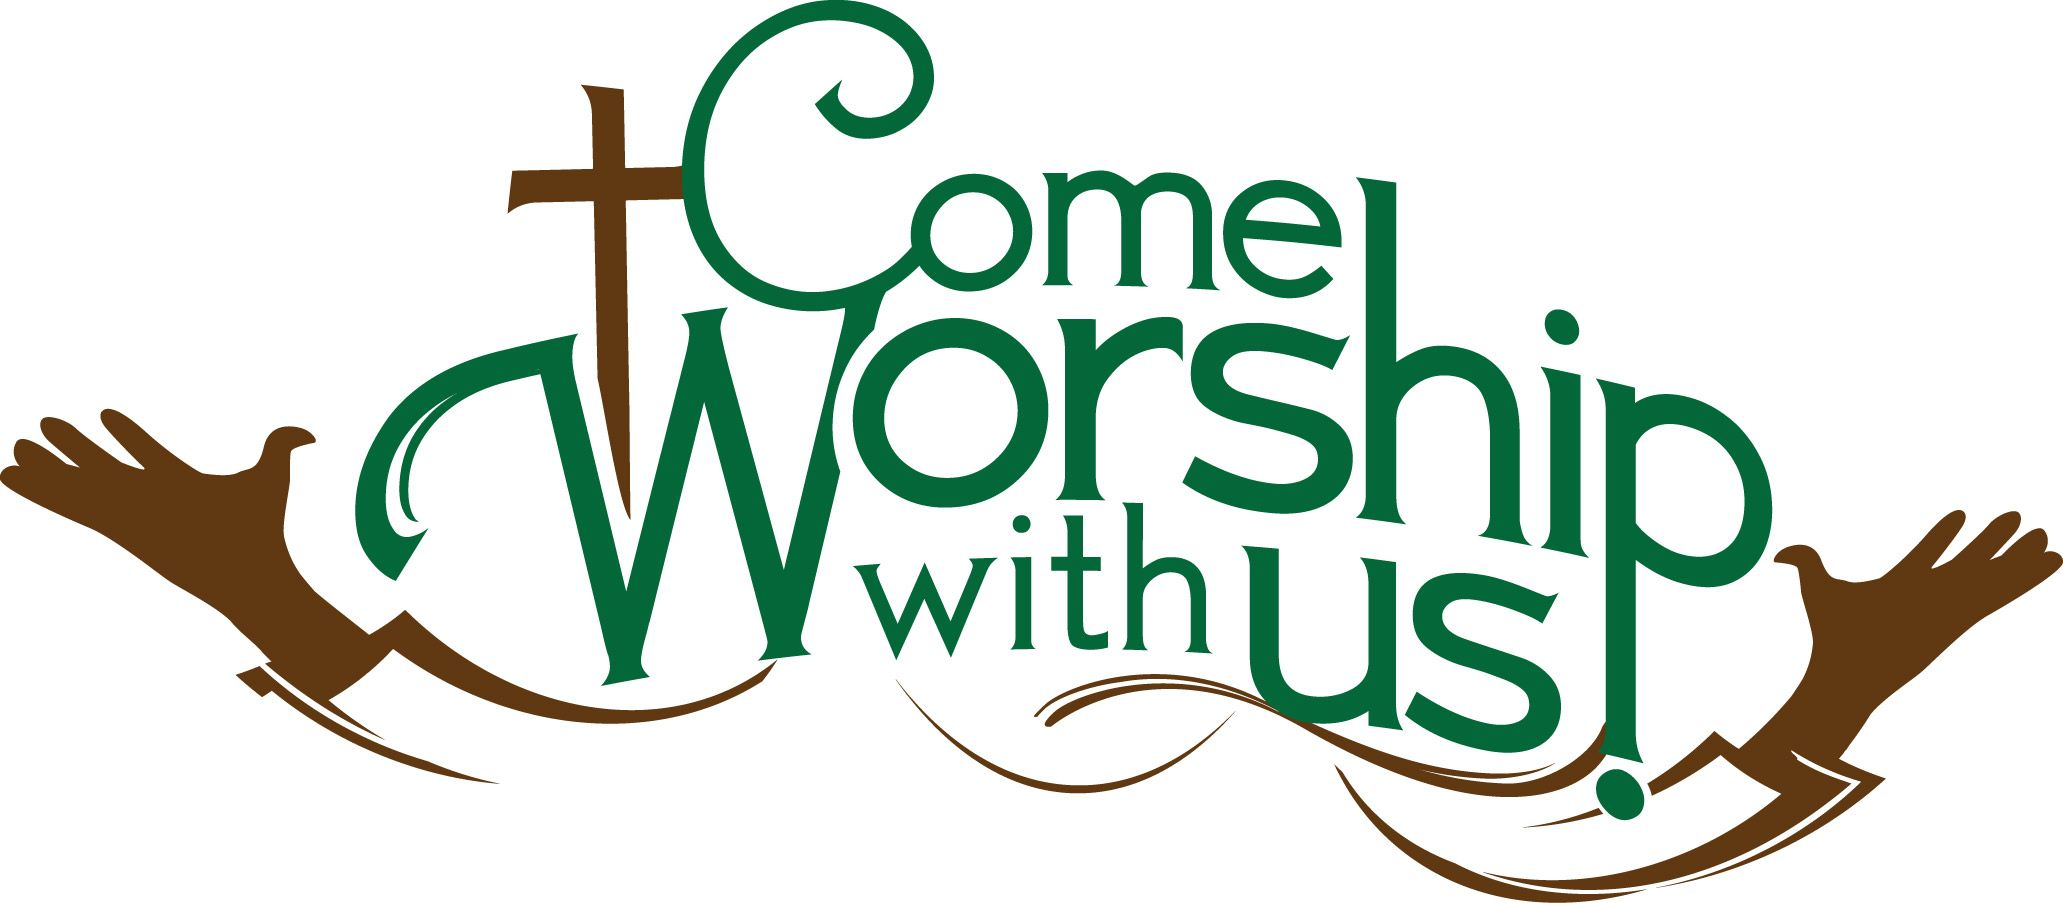 Each worship service is followed by a Fellowship Hour with the first.